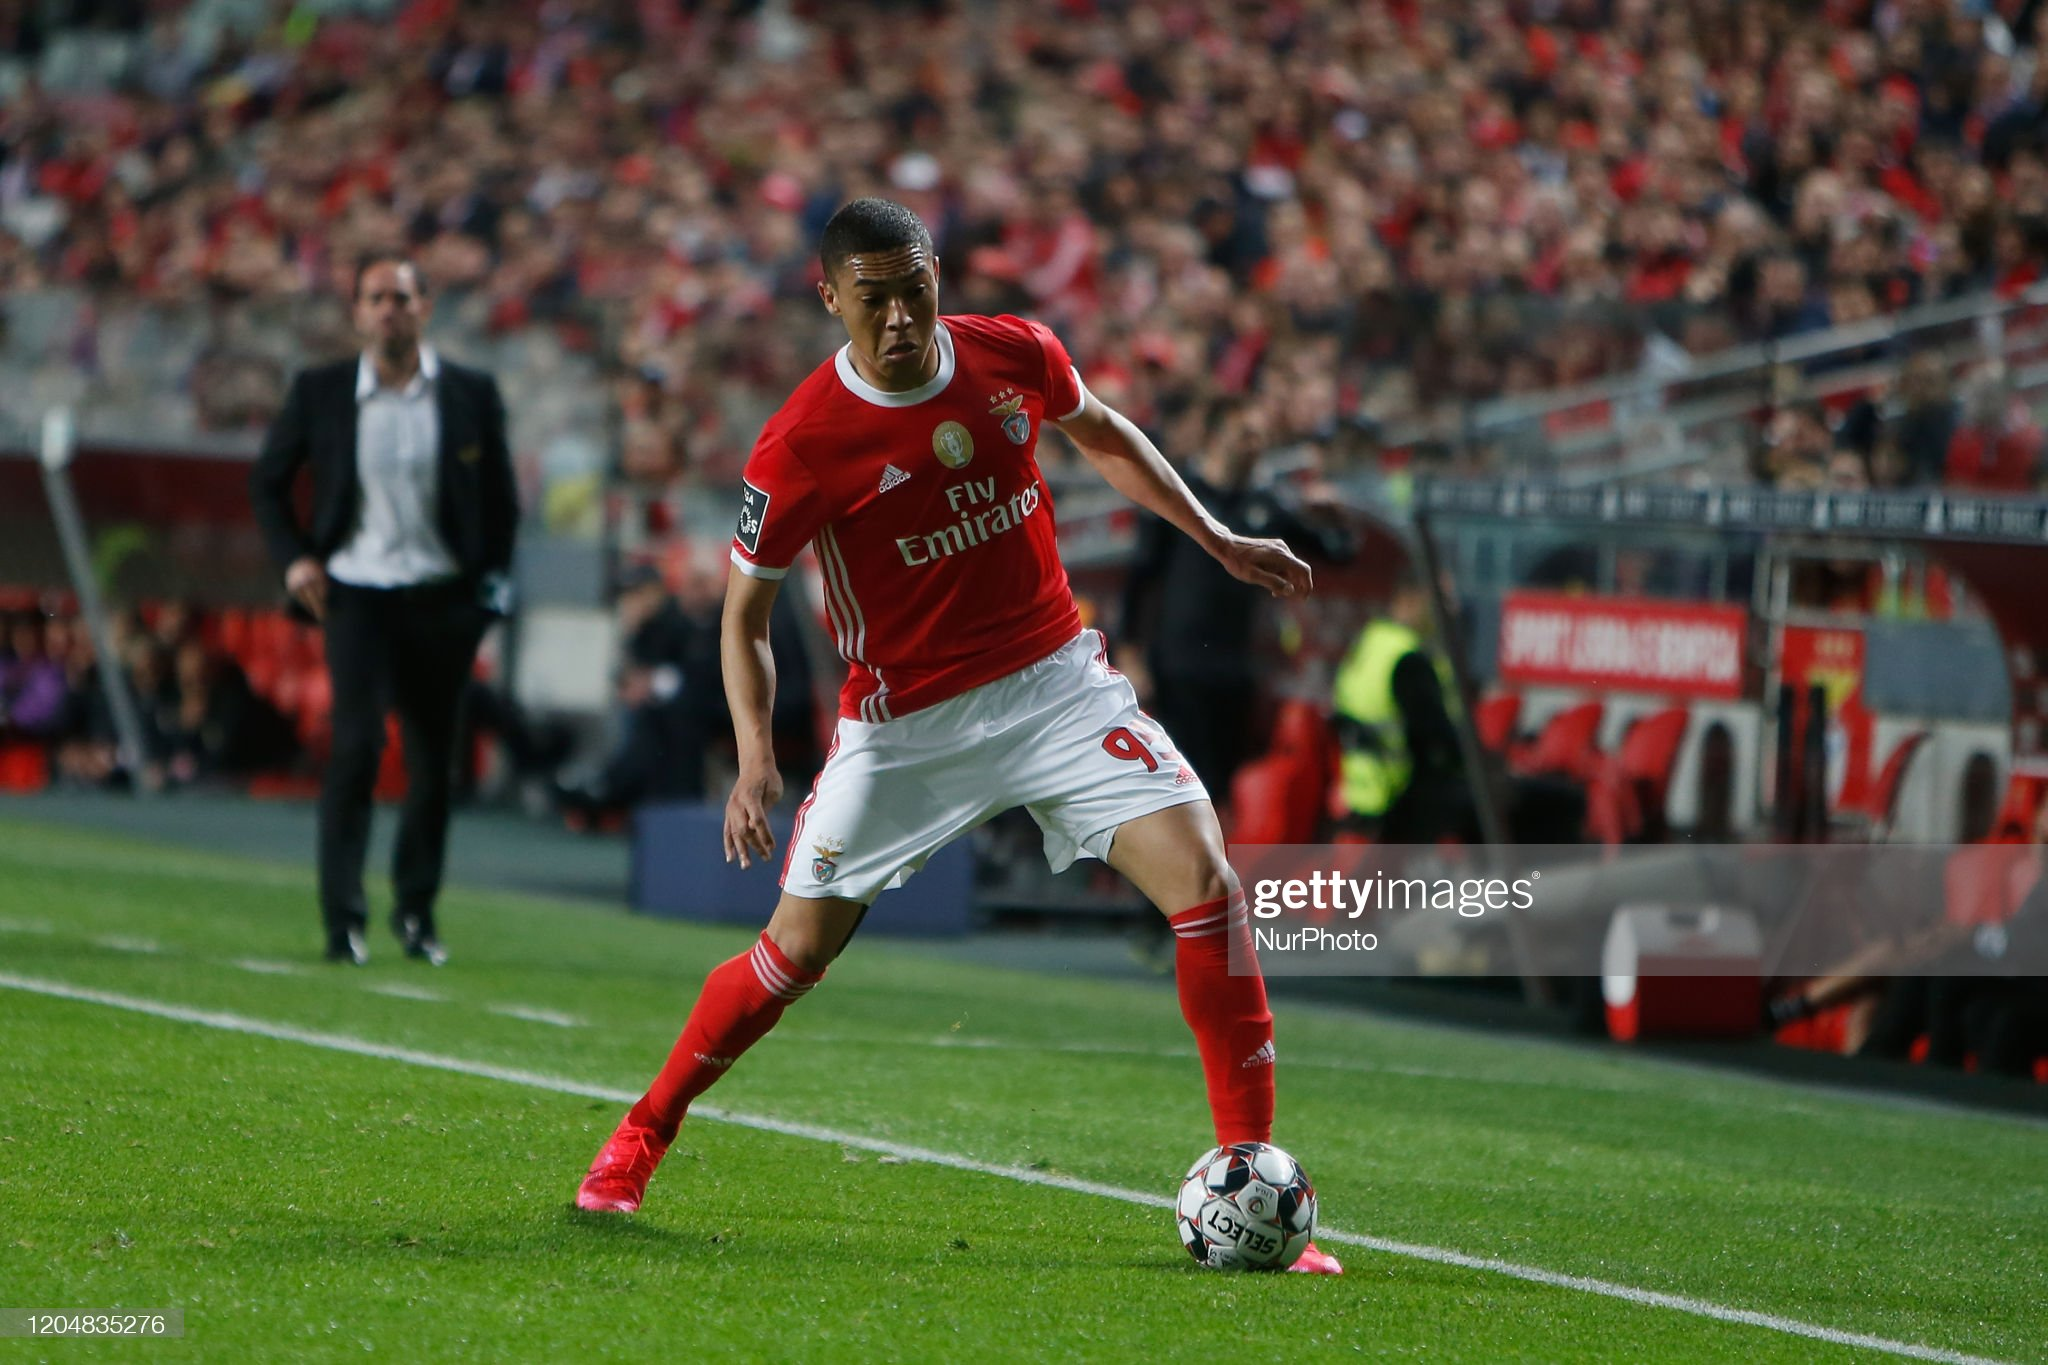 Benfica vs Tondela Preview, prediction and odds